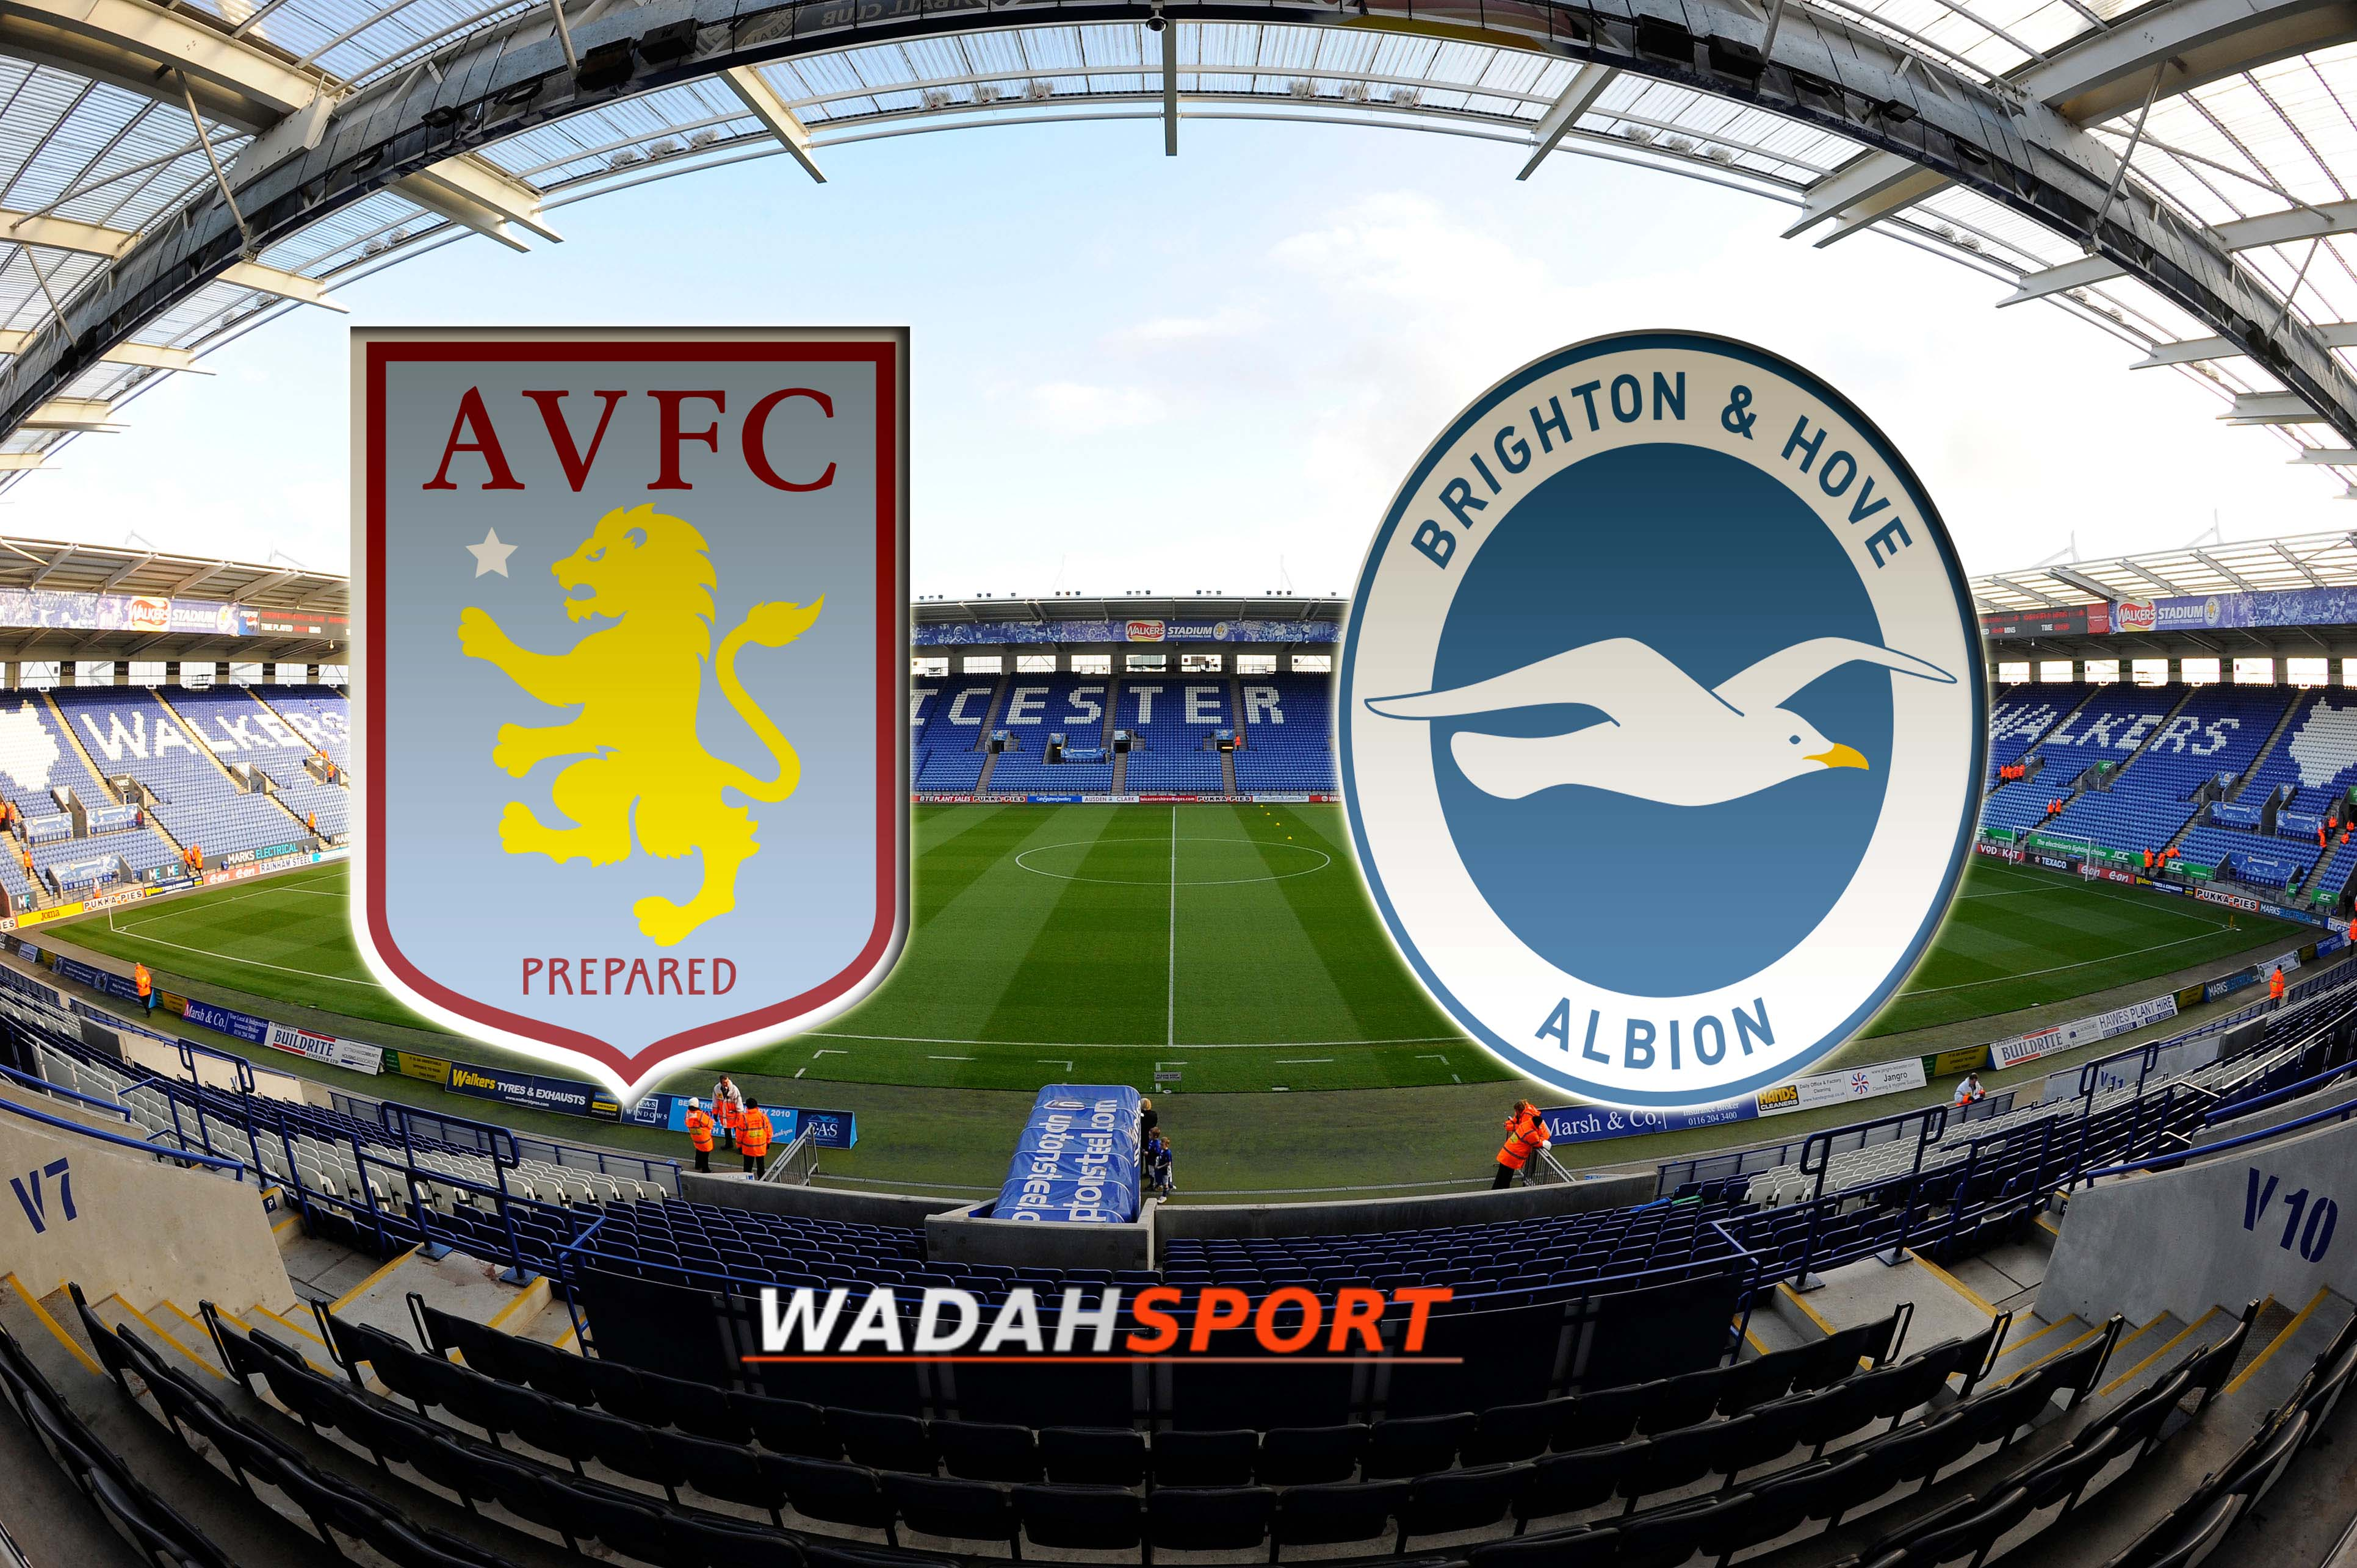 Preview Bola Aston Villa vs Brighton & Hove Albion 7 Mei 2017